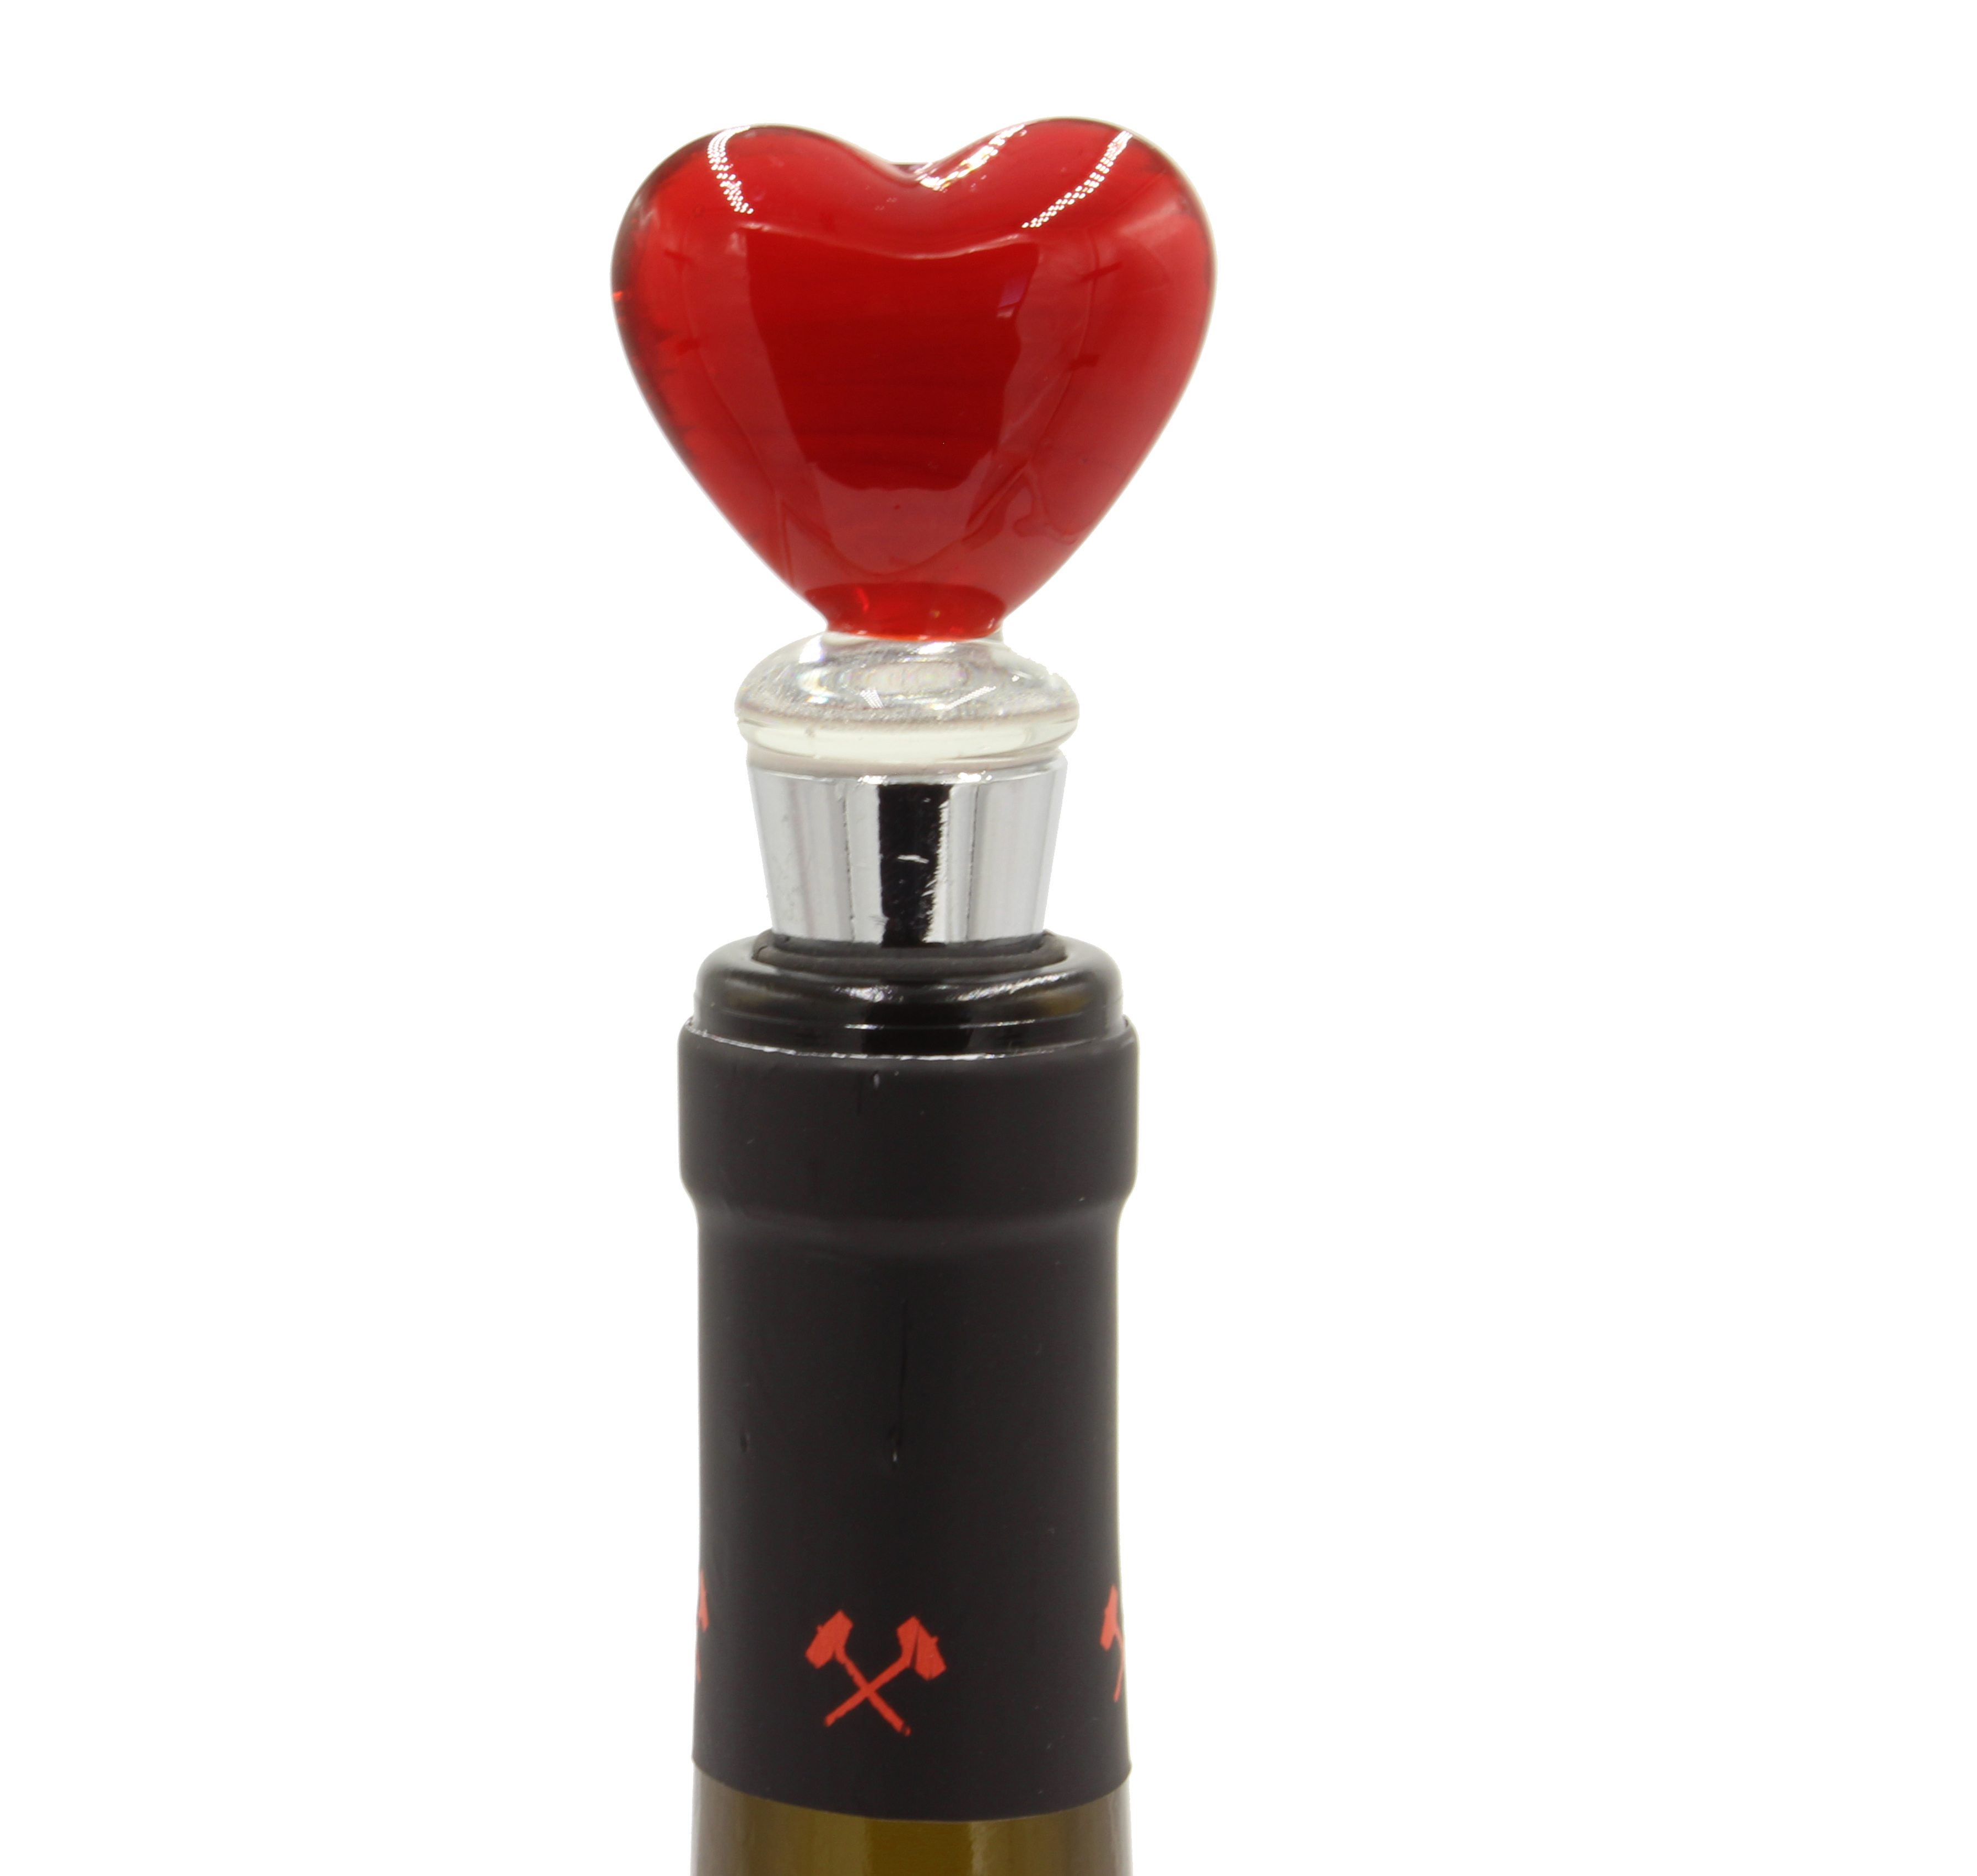 ABS Heart - Bottle Stoppers